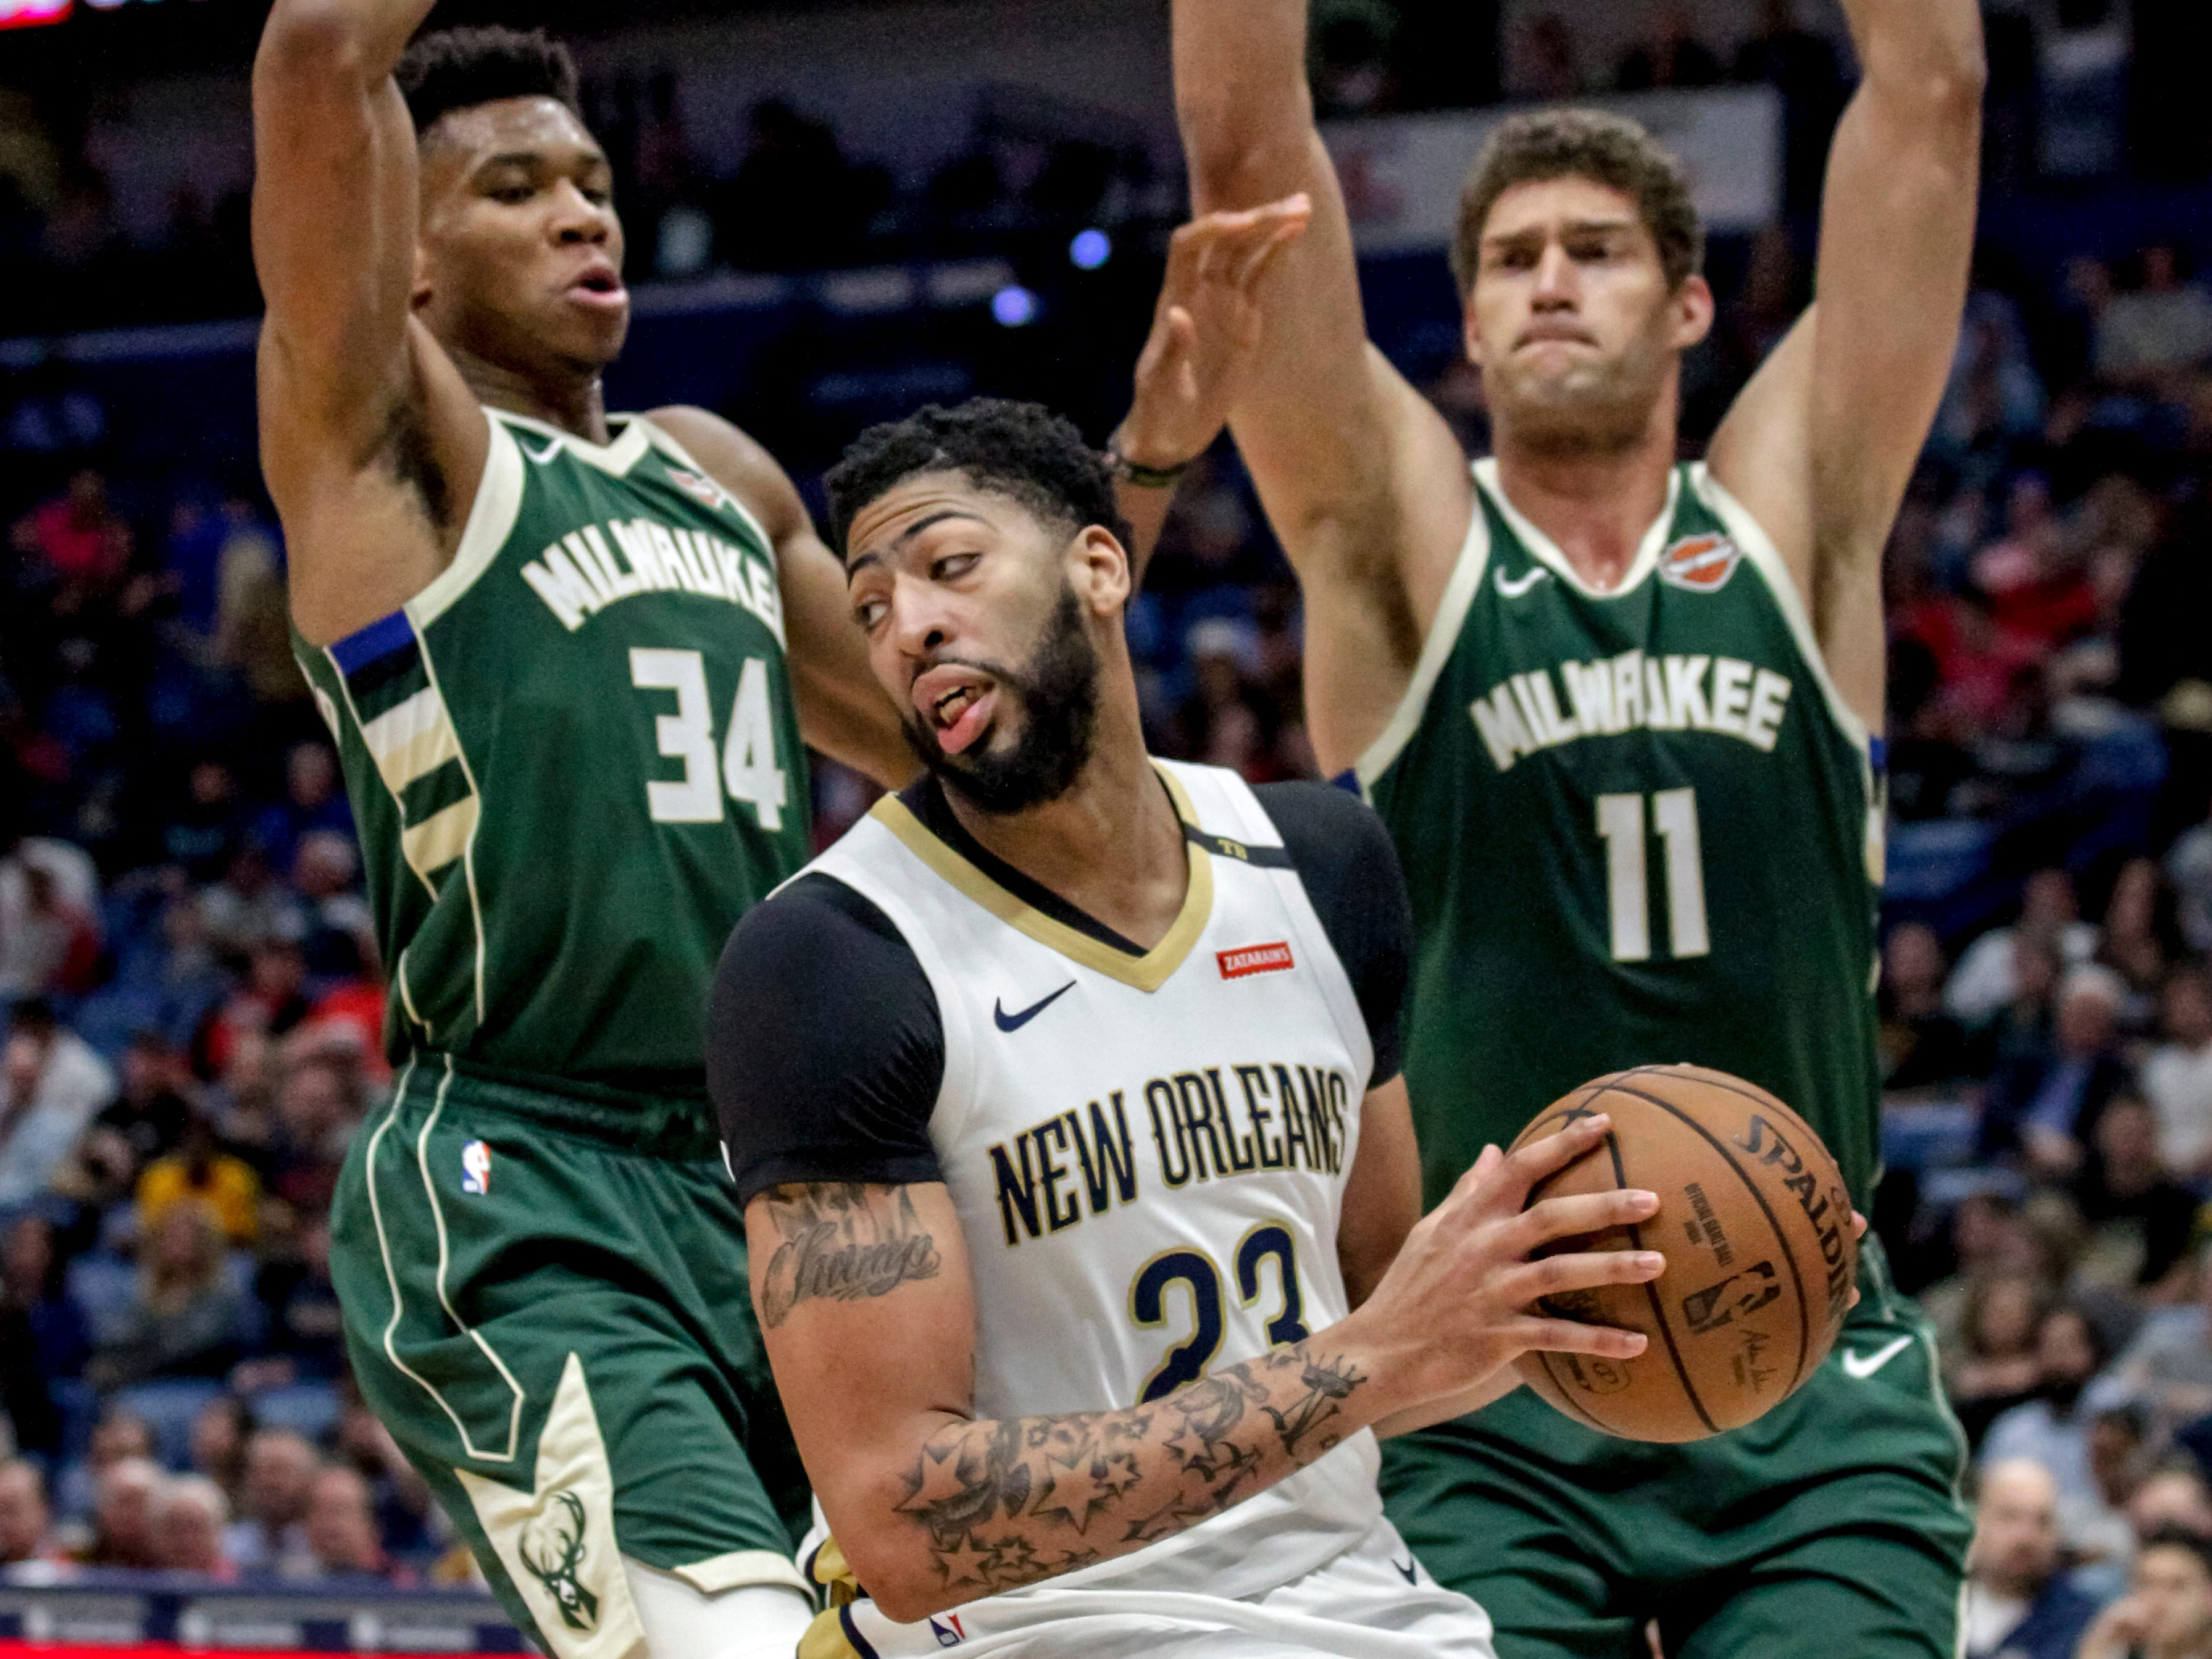 Pelicans forward Anthony Davis gets pinned along the baseline by Giannis Antetokounmpo and Brook Lopez of the Bucks during the first half.